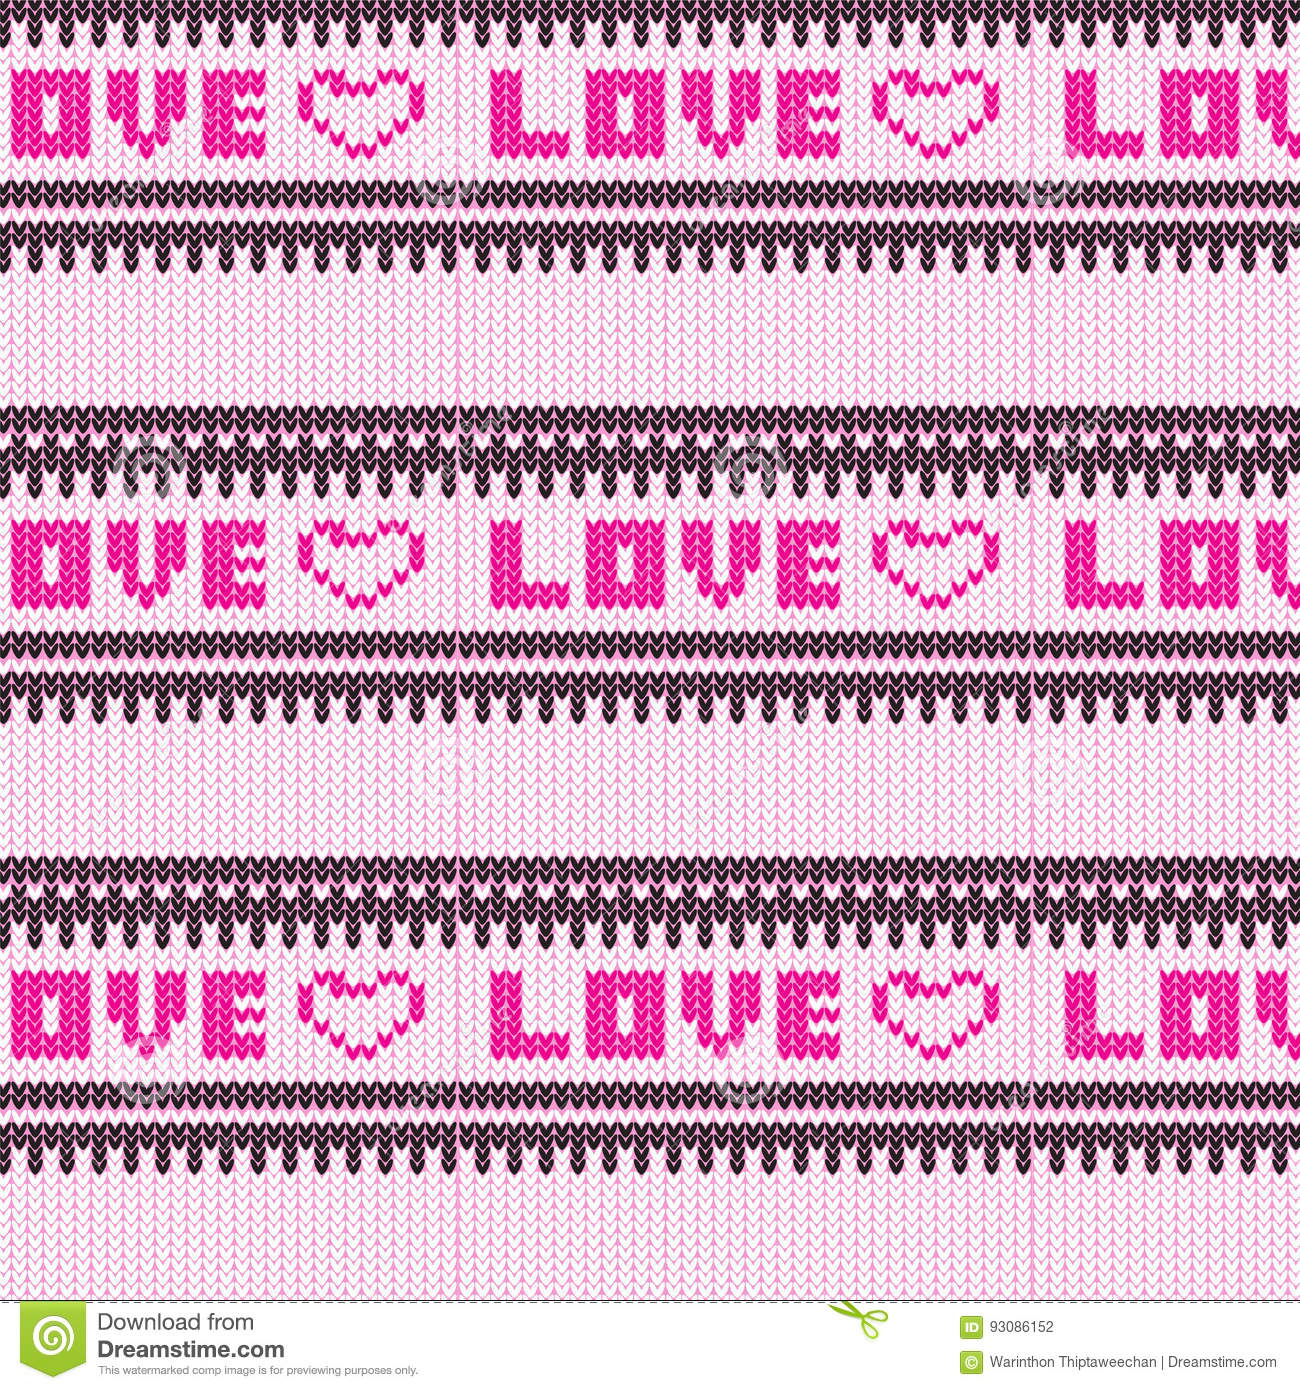 Pink Love Heart With Black And White Striped Knitted Pattern Bac